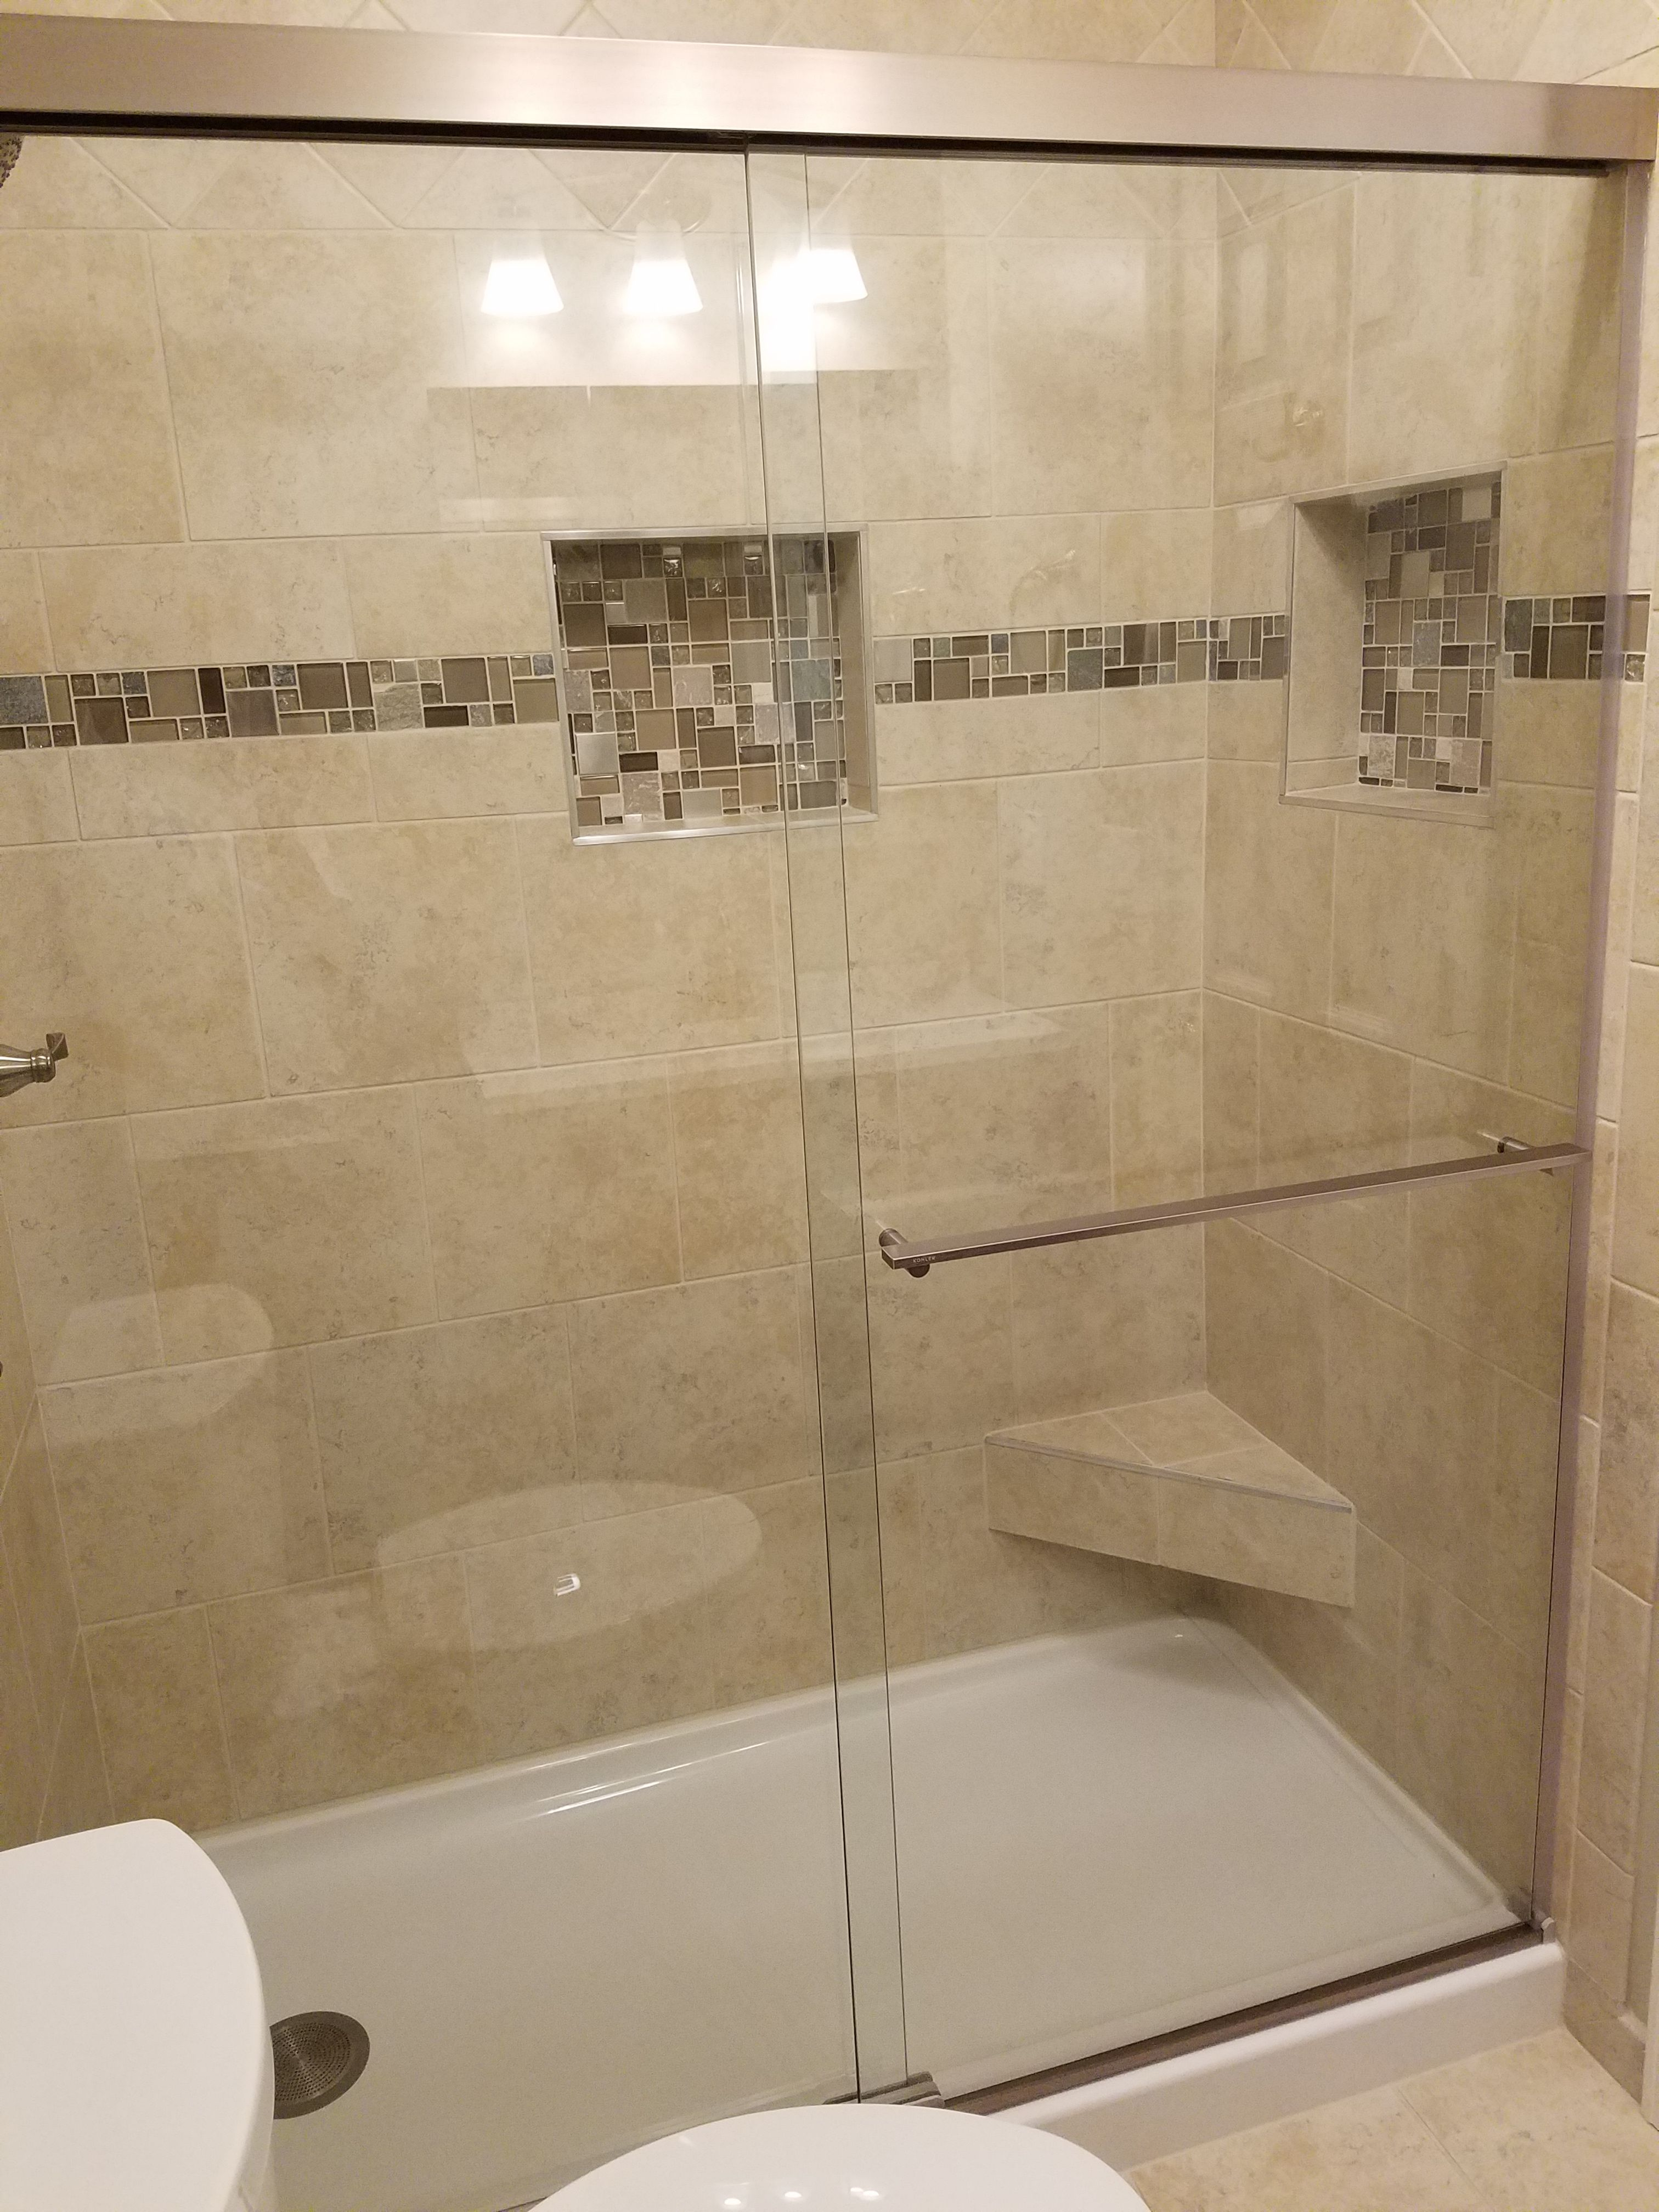 Standing Shower With Beige Tile And Fiberglass Shower Pan